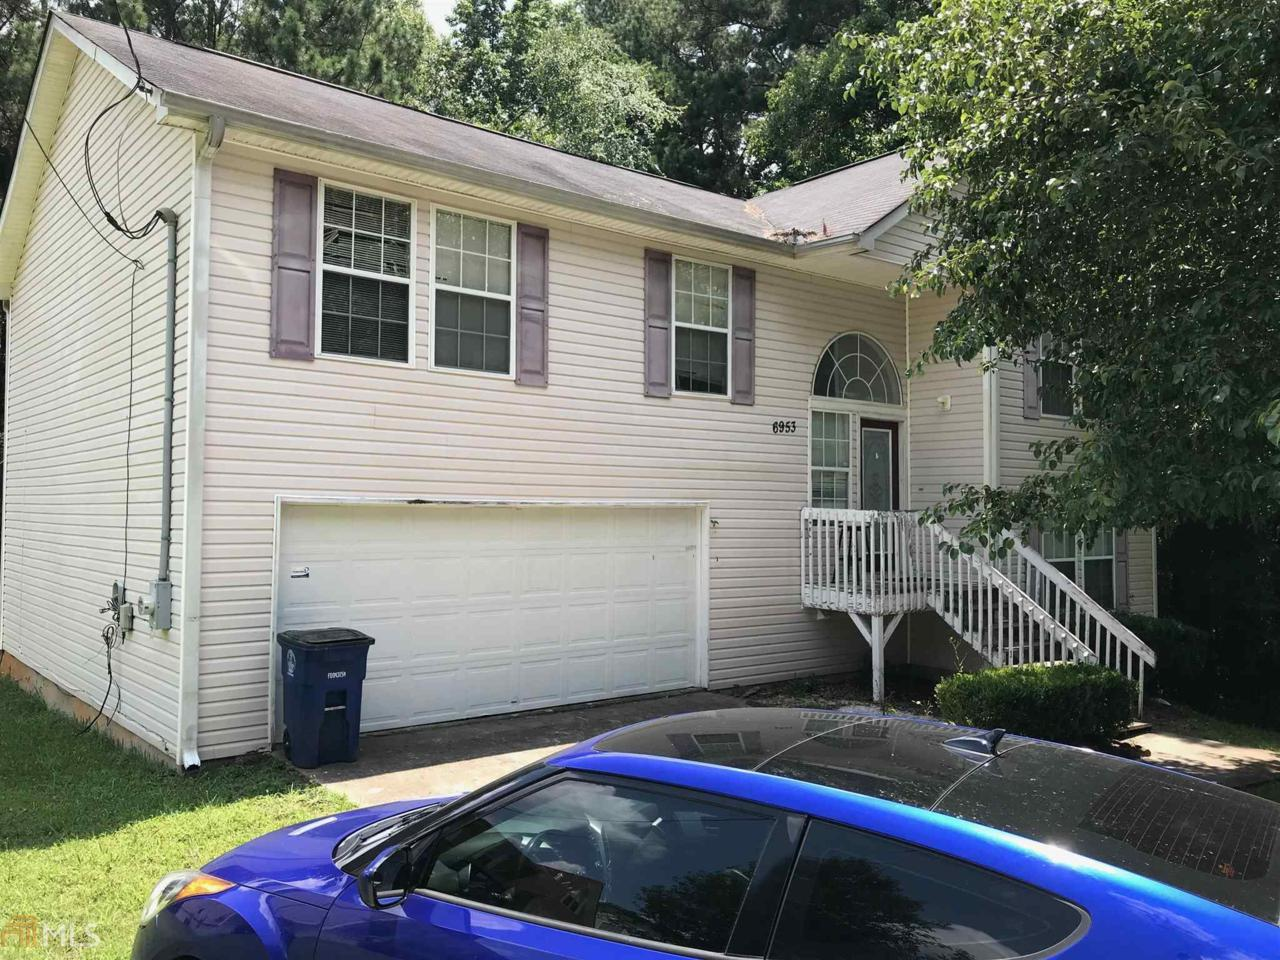 6953 Cave Springs Rd - Photo 1